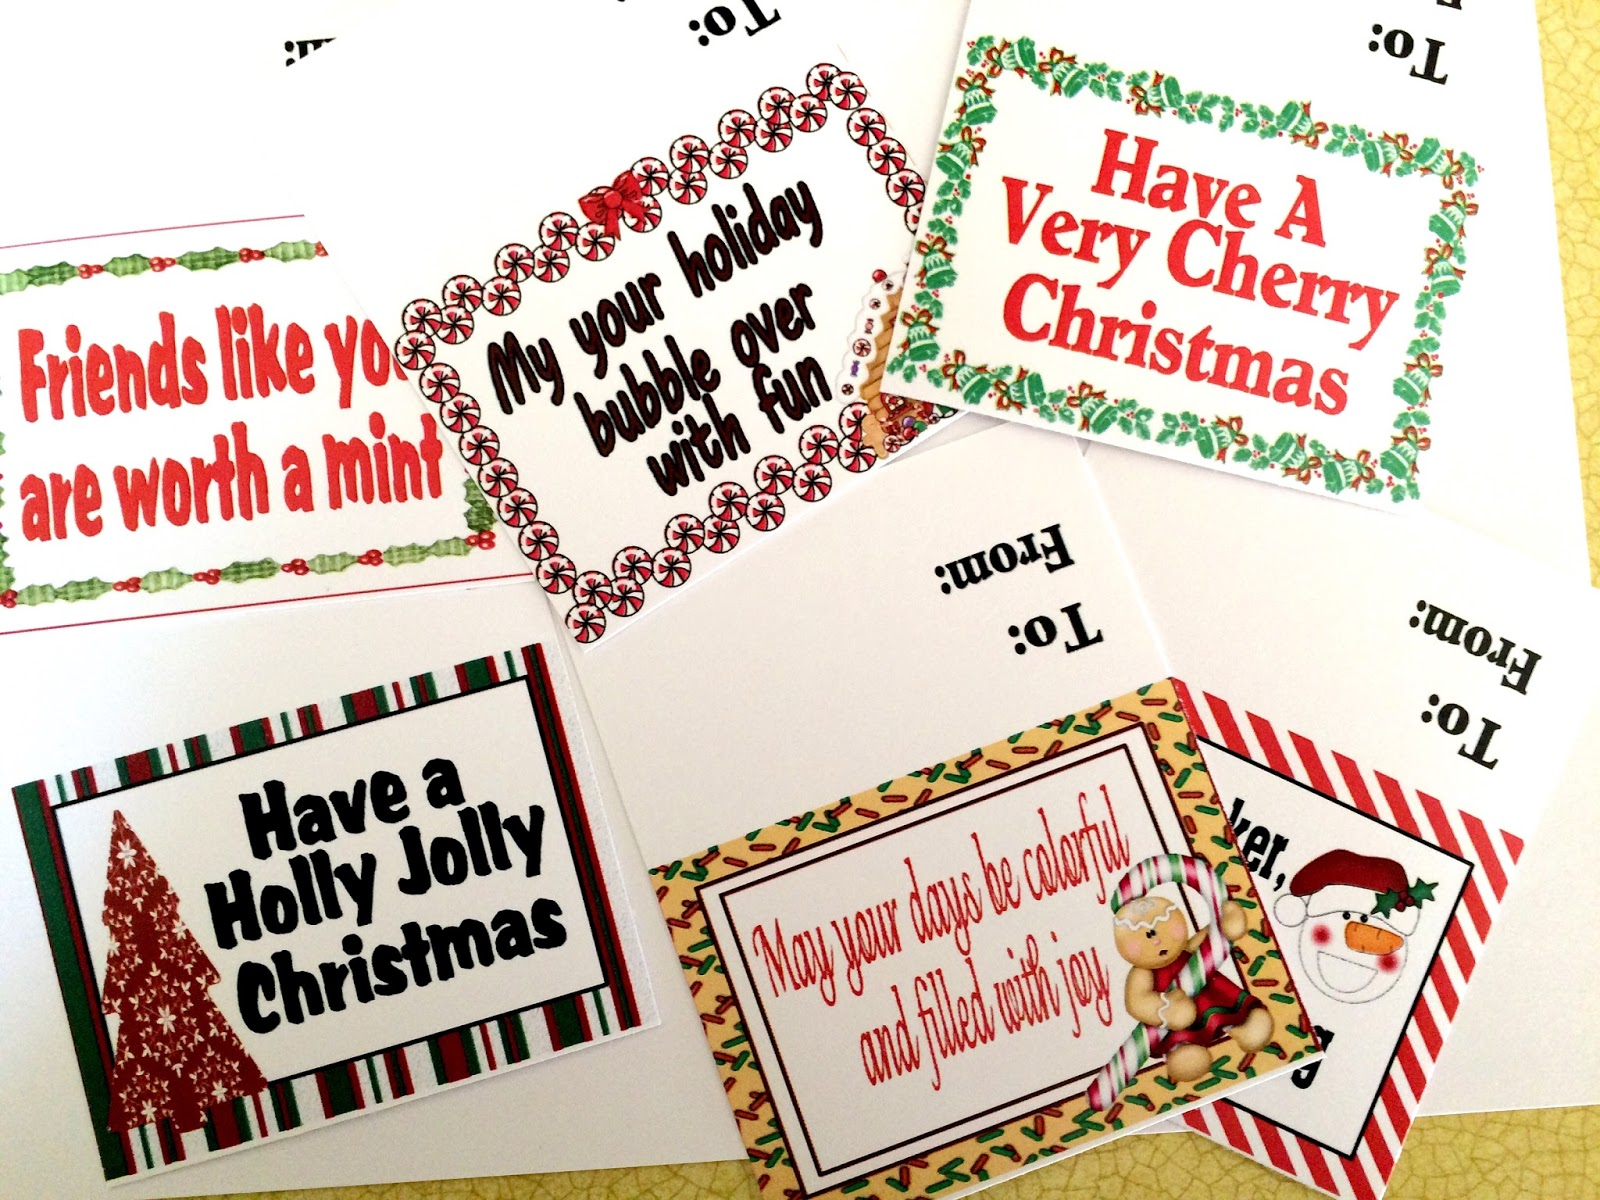 graphic regarding Christmas Bag Toppers Free Printable called Towards and In opposition to Xmas Sweet Bag Toppers Do-it-yourself Get together Mother